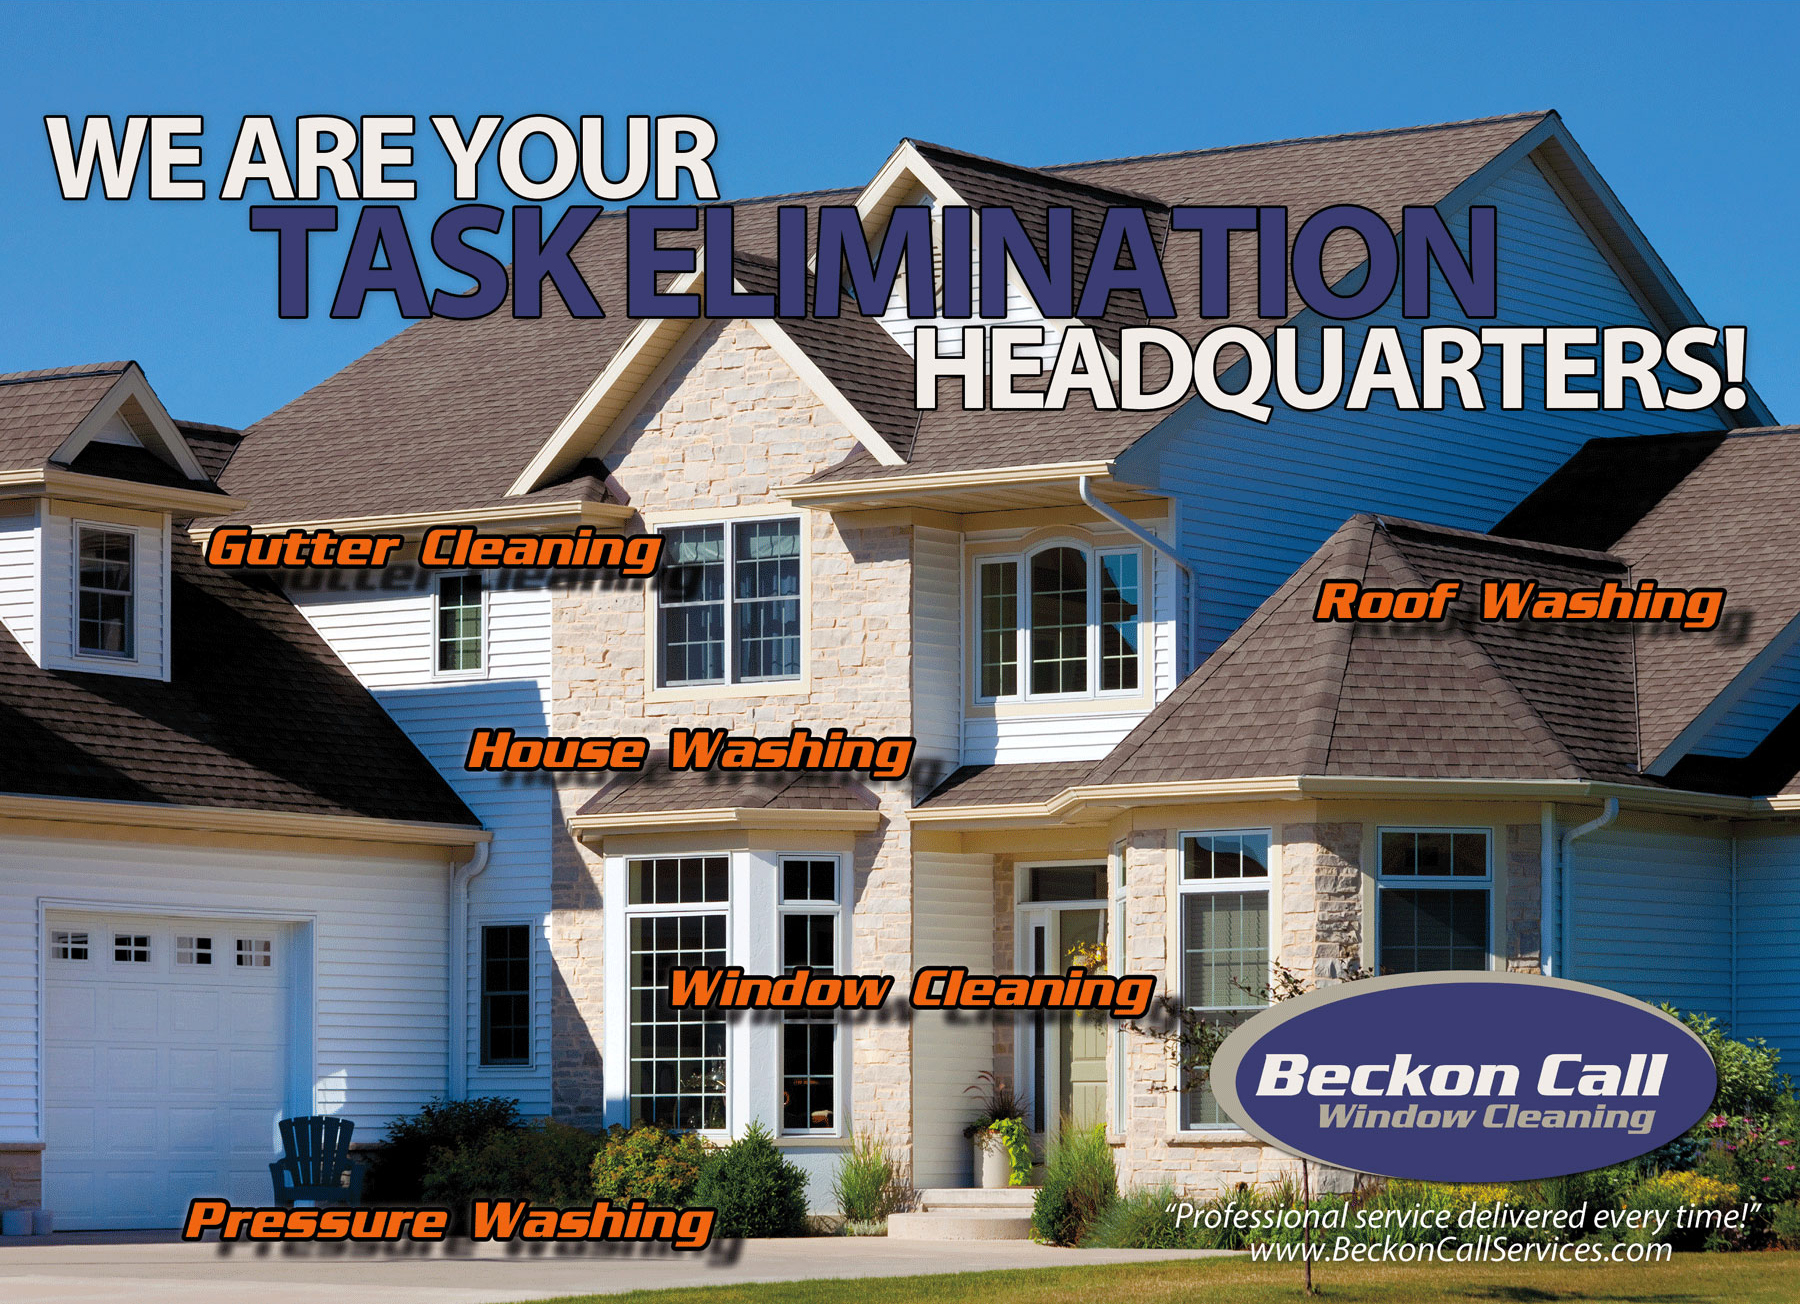 Beckon Call Window Cleaning is your task elimination headquarters